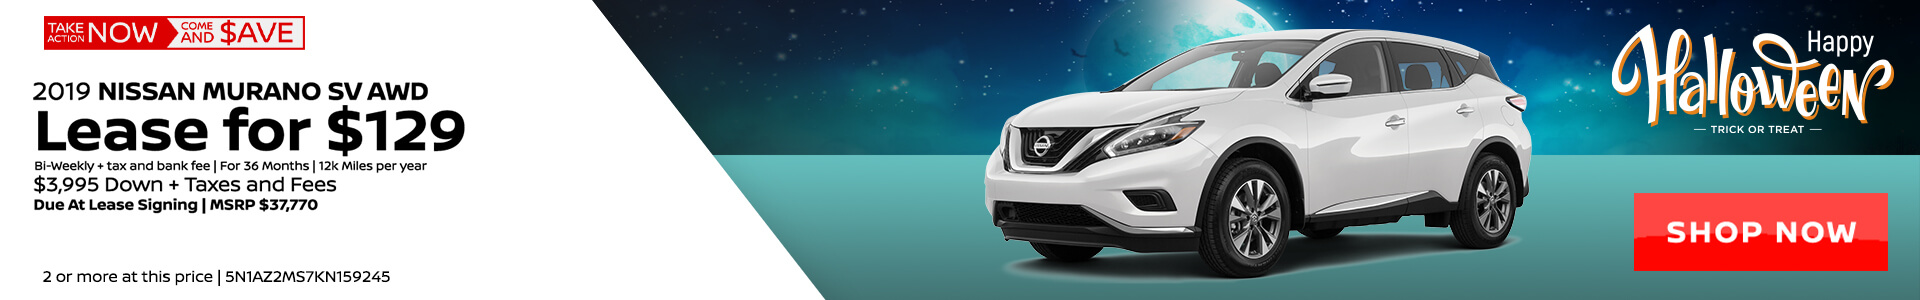 Nissan Murano $139 Lease